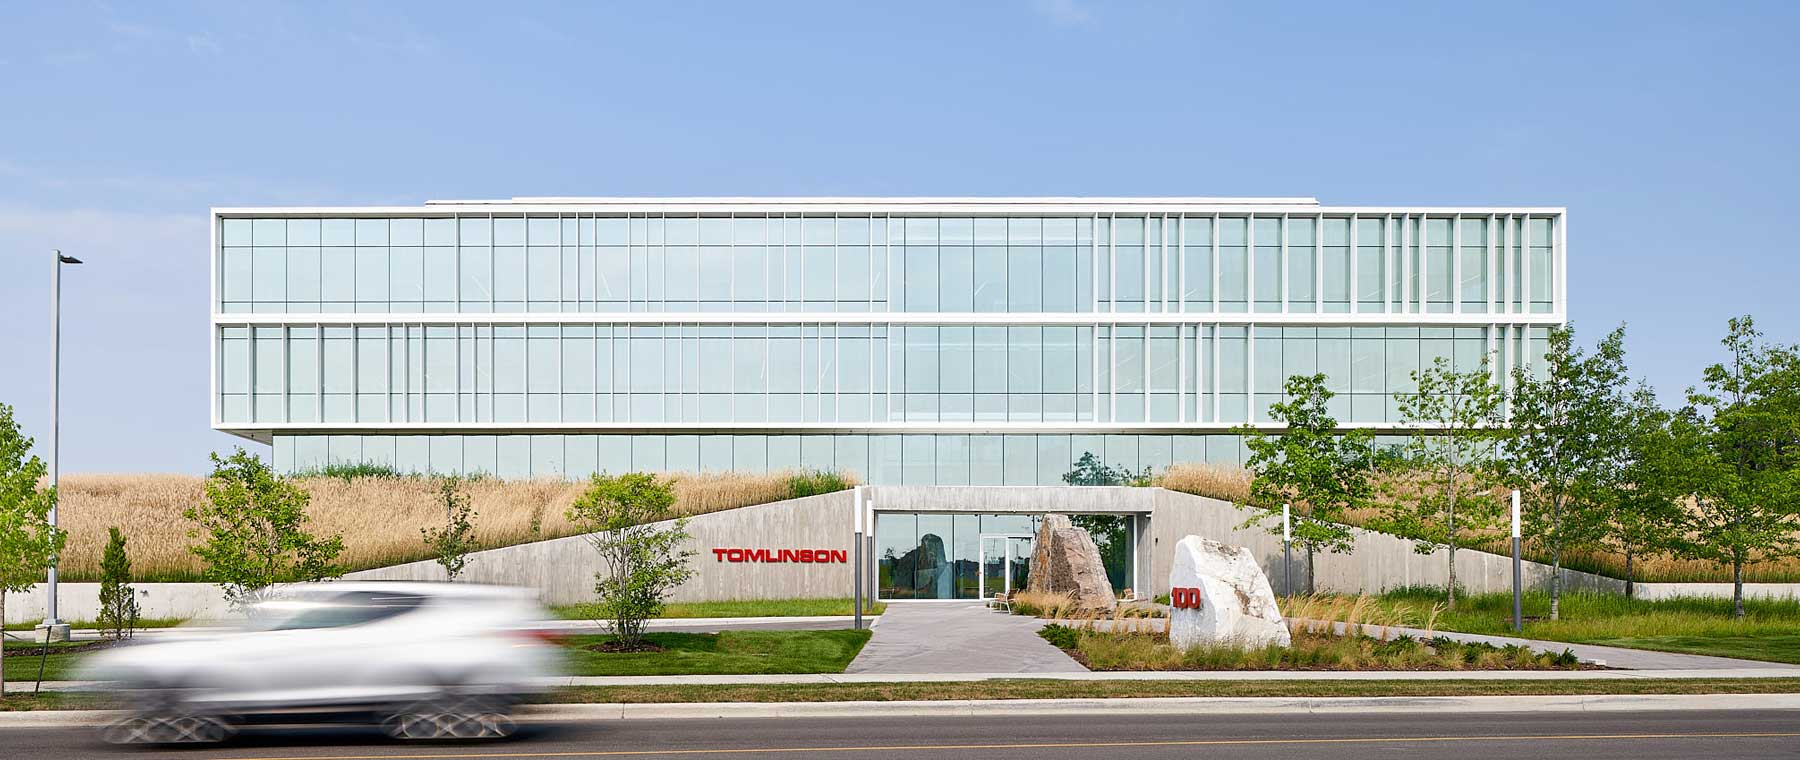 The Core, Tomlinson's new HQ, is a bright, bold space for a growing company